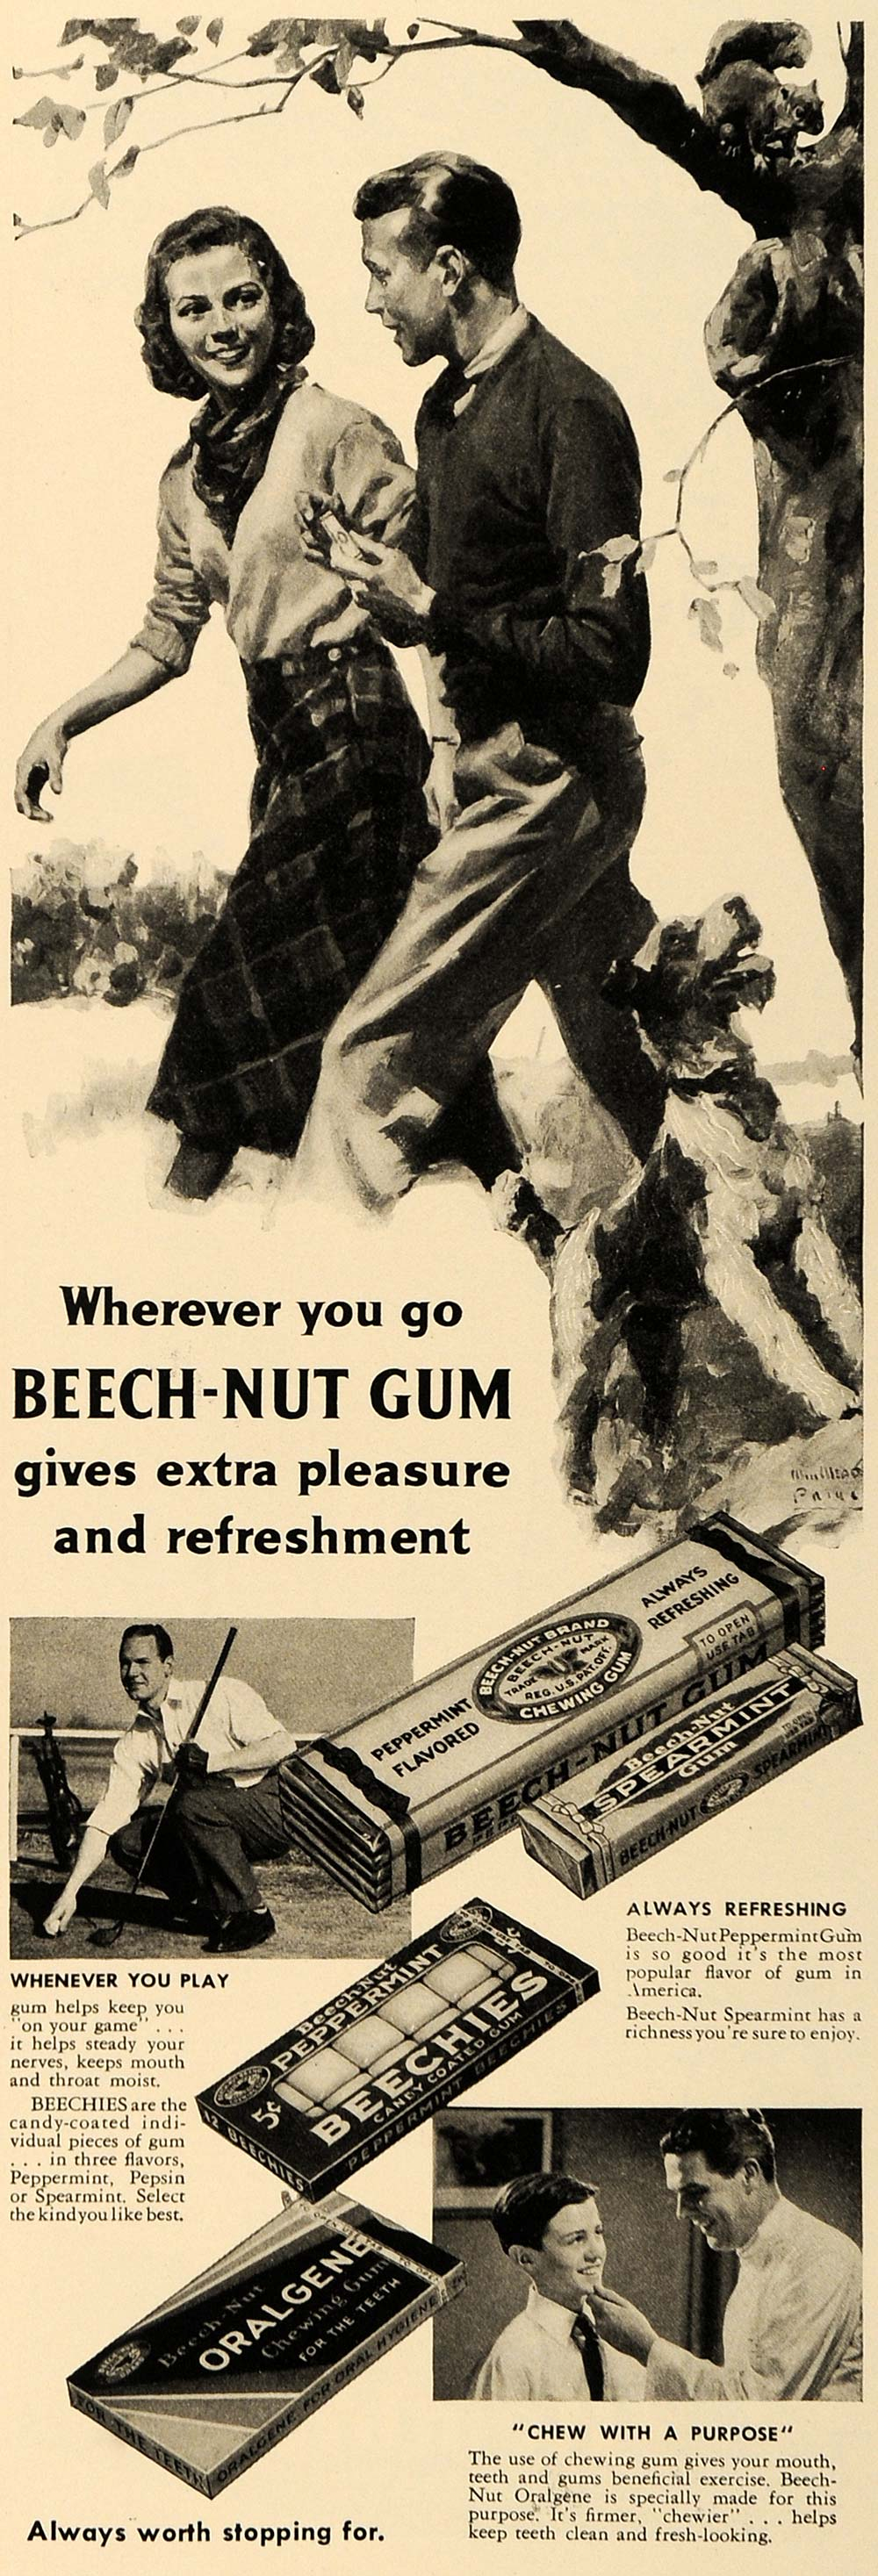 1938 Ad Beech-Nut Spearmint Chewing Gum Oralgene Golf - ORIGINAL ESQ1